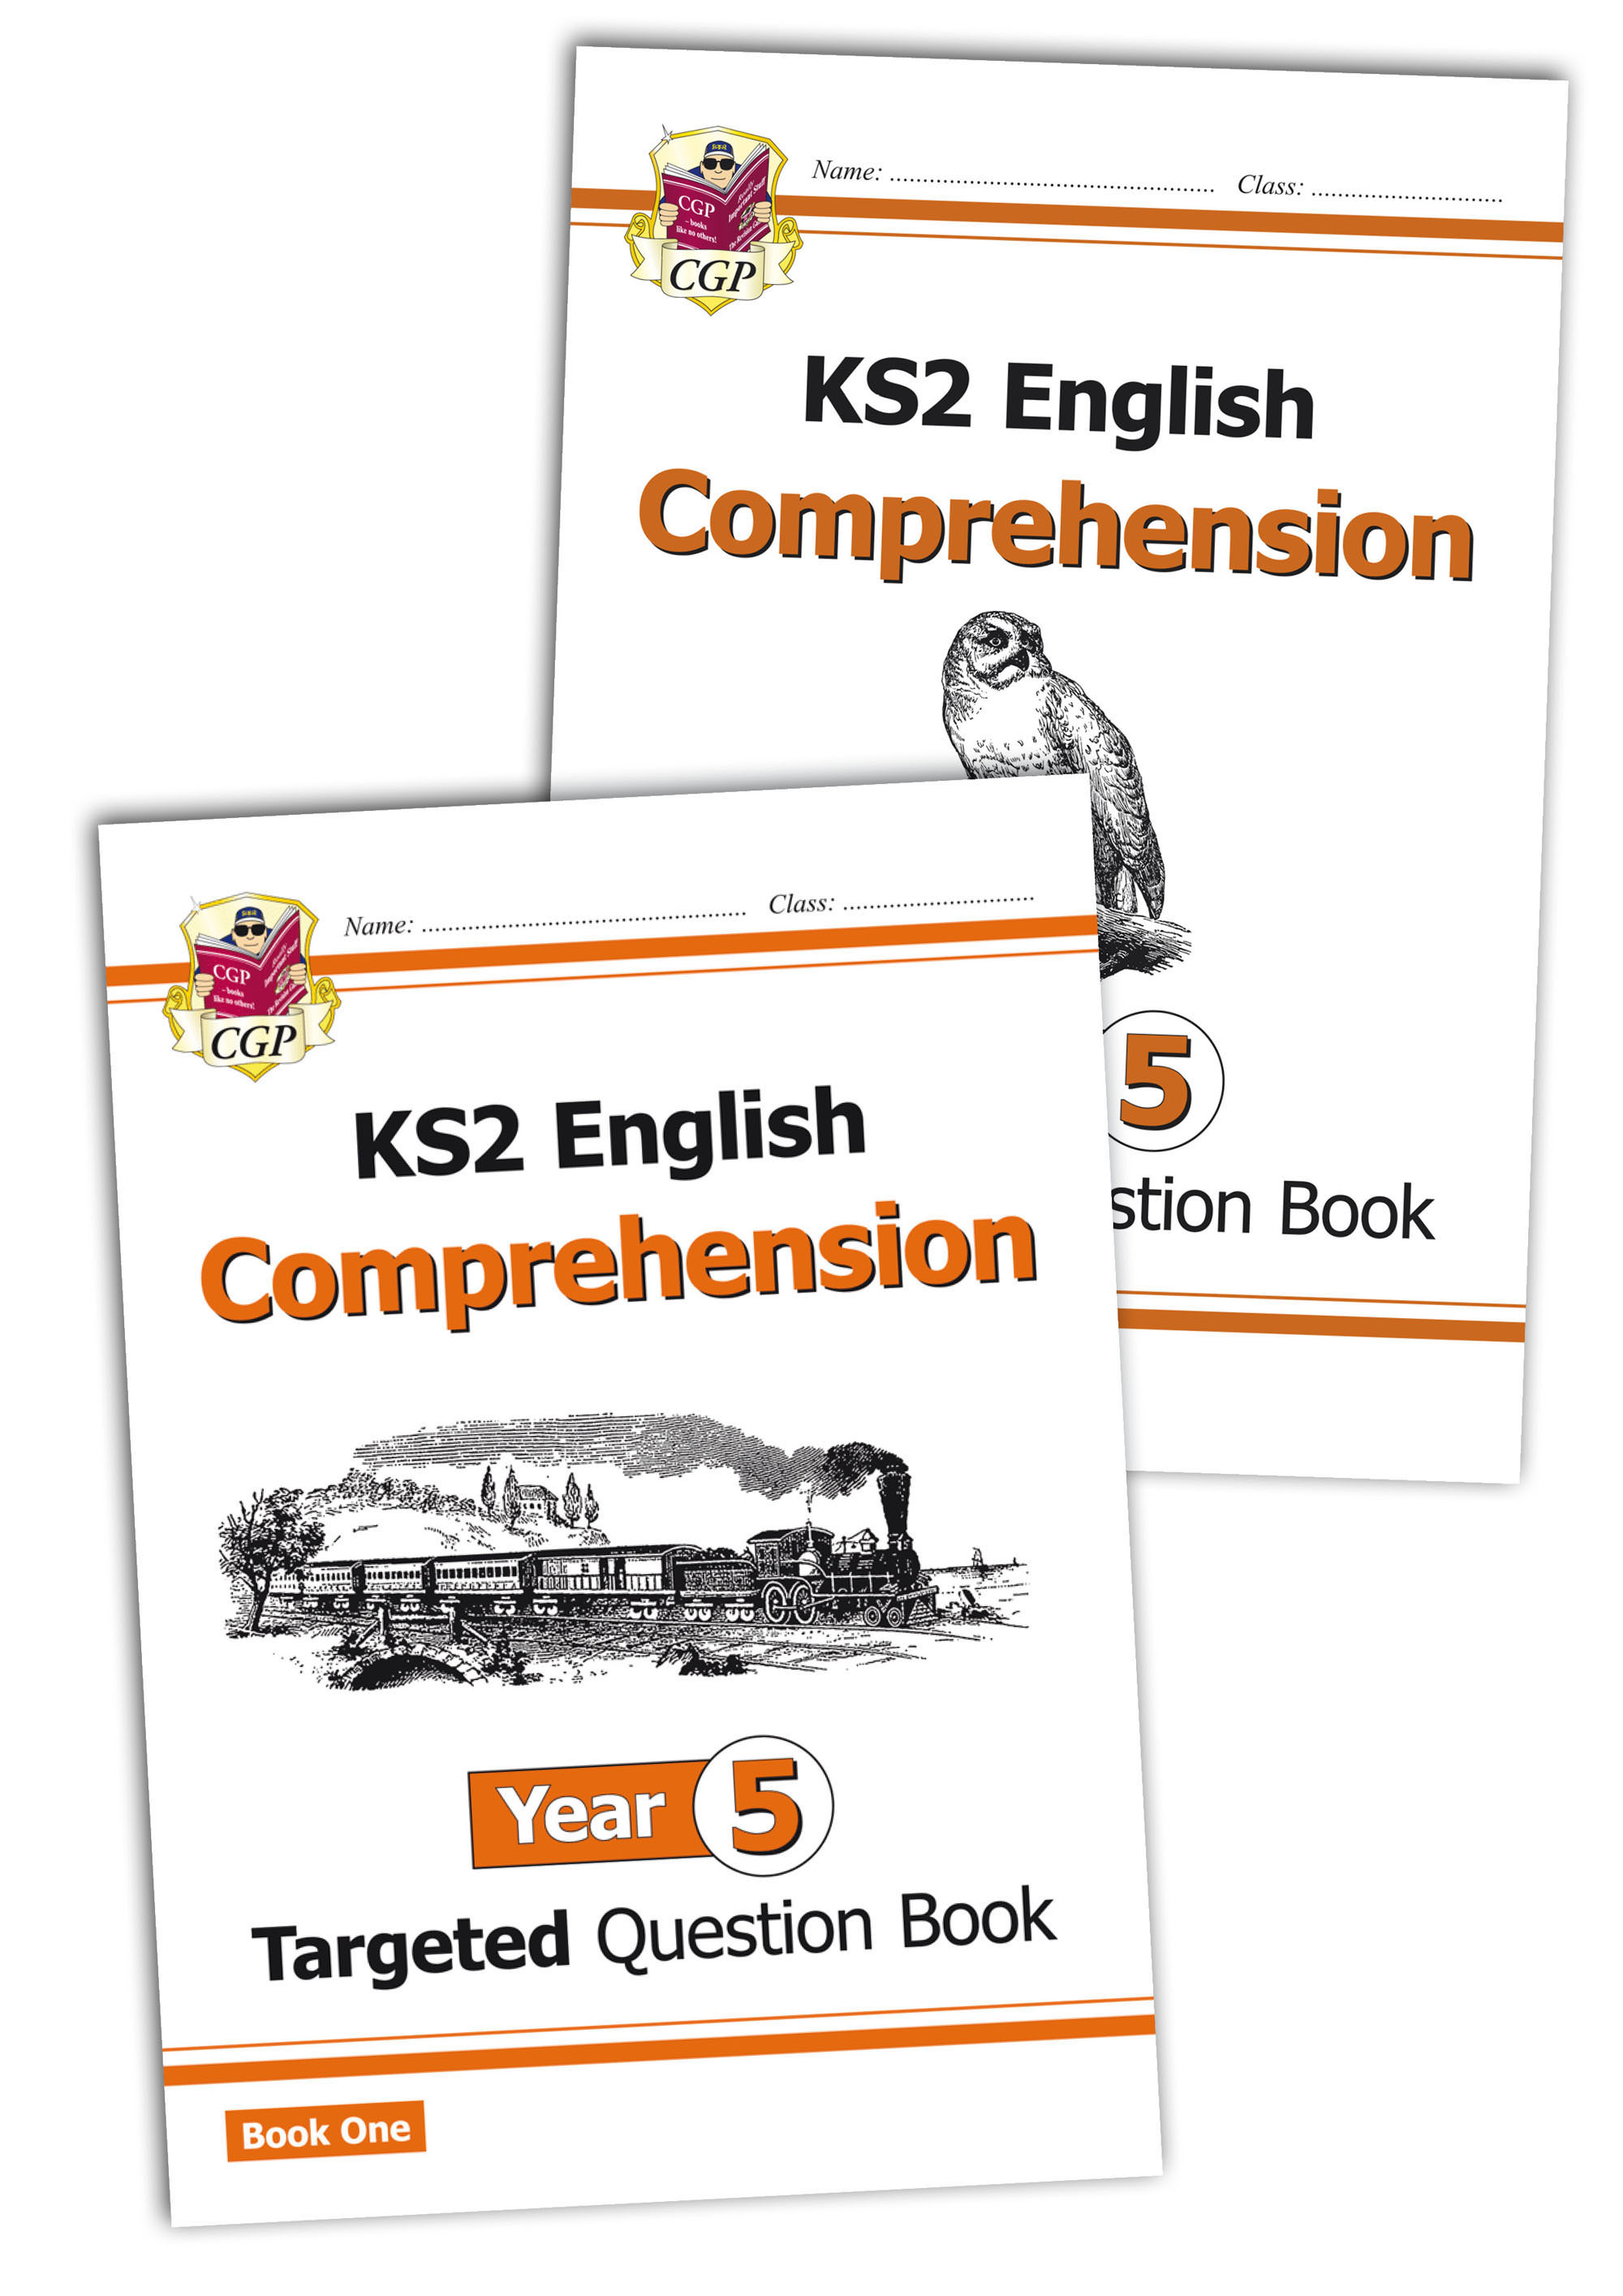 E5CWB21 - New KS2 English Targeted Question Book: Year 5 Comprehension - Book 1 & 2 Bundle